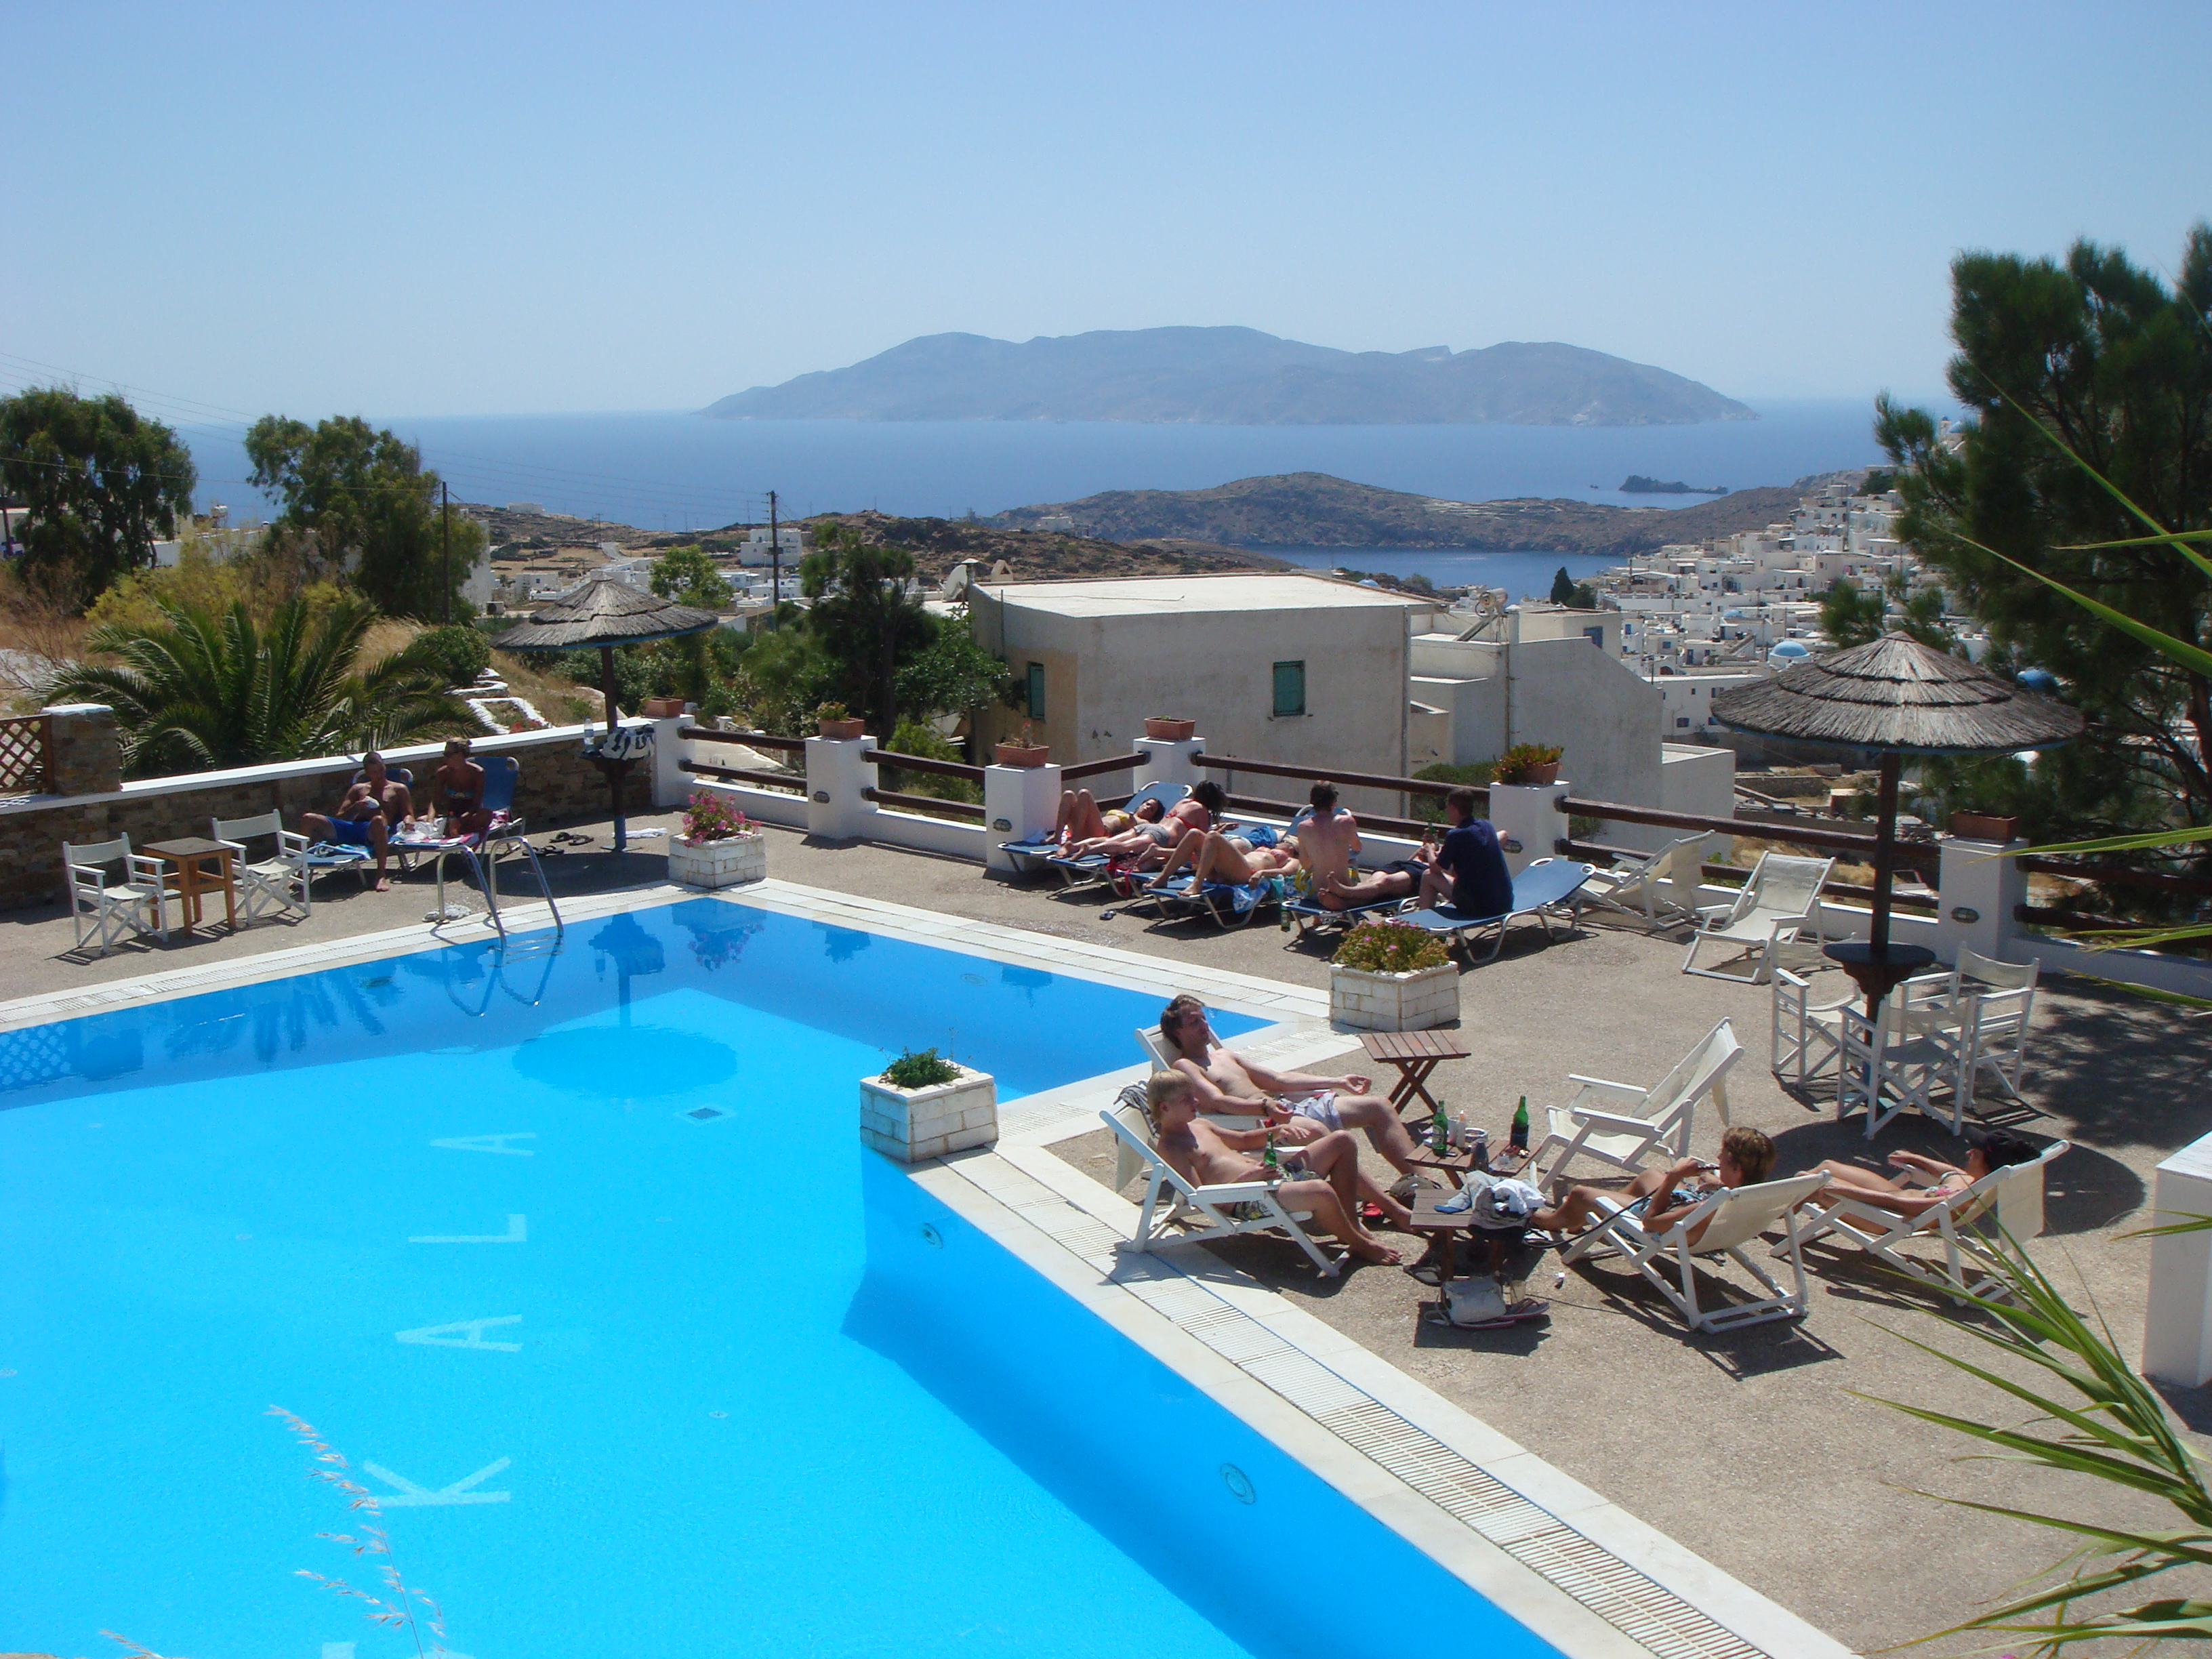 Skala Hotel Ios - Swimming pool area